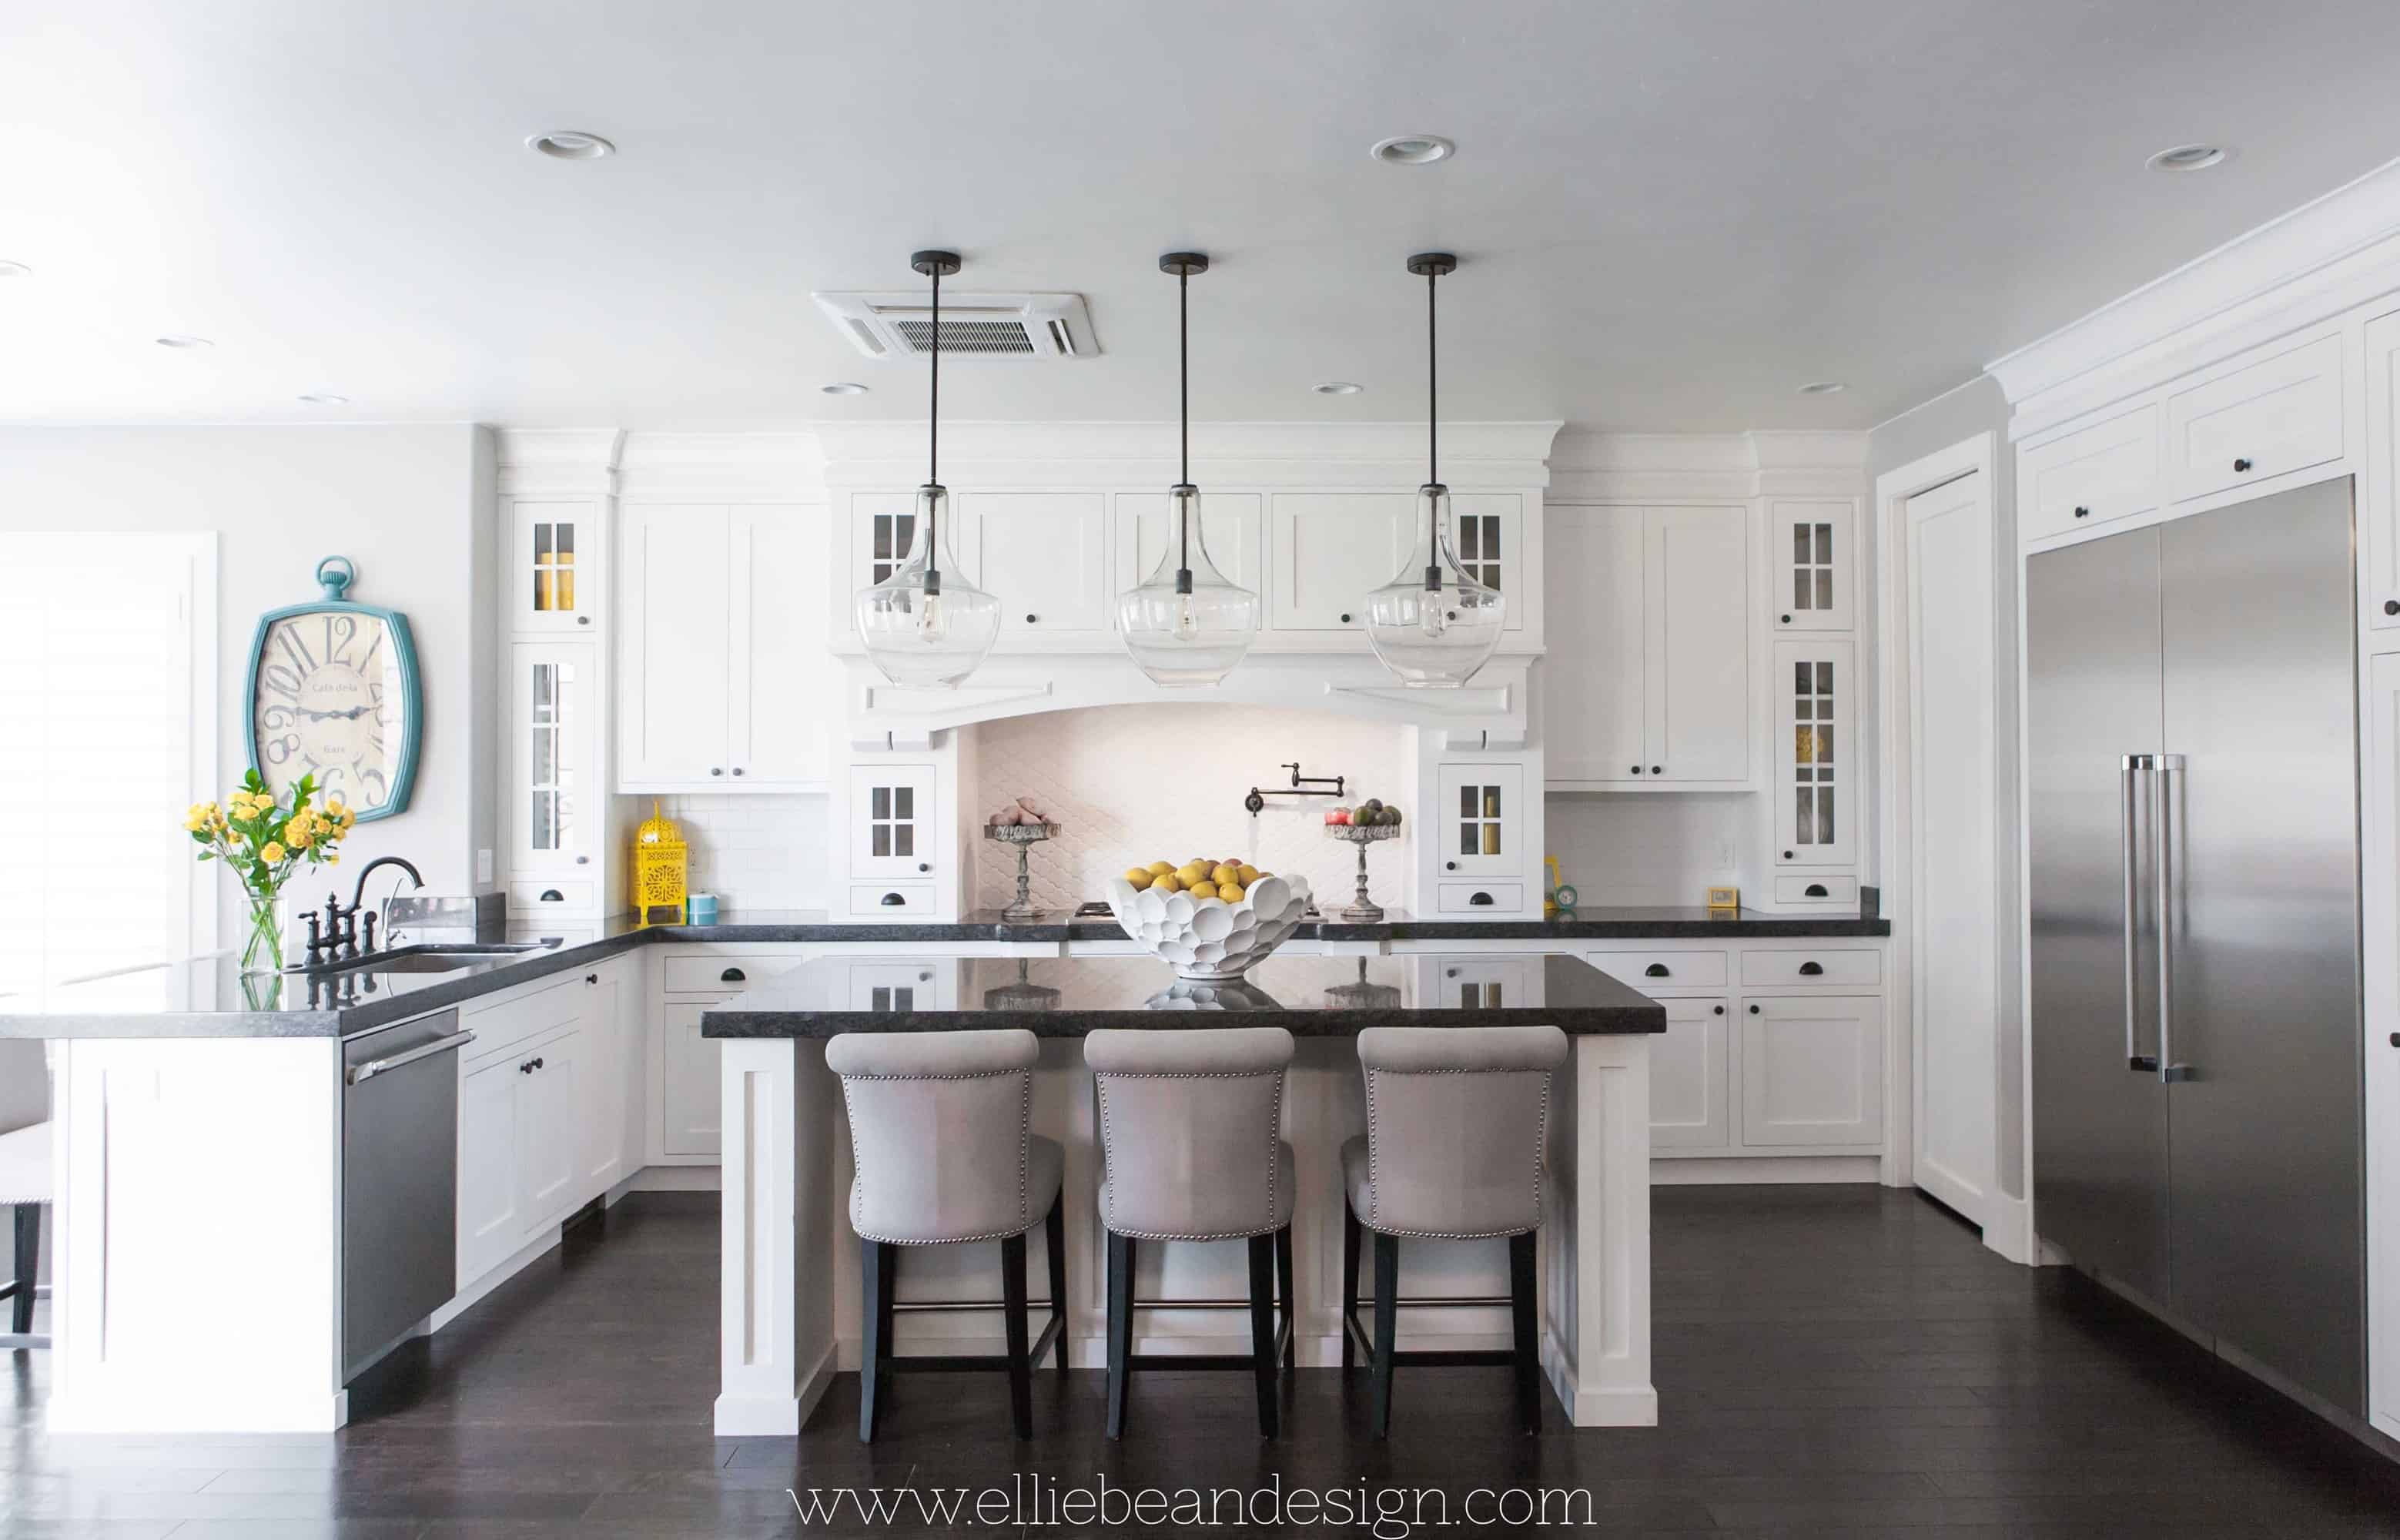 Attractive 10 Rules To Create The Perfect White Kitchen! Www.overthebigmoon.com